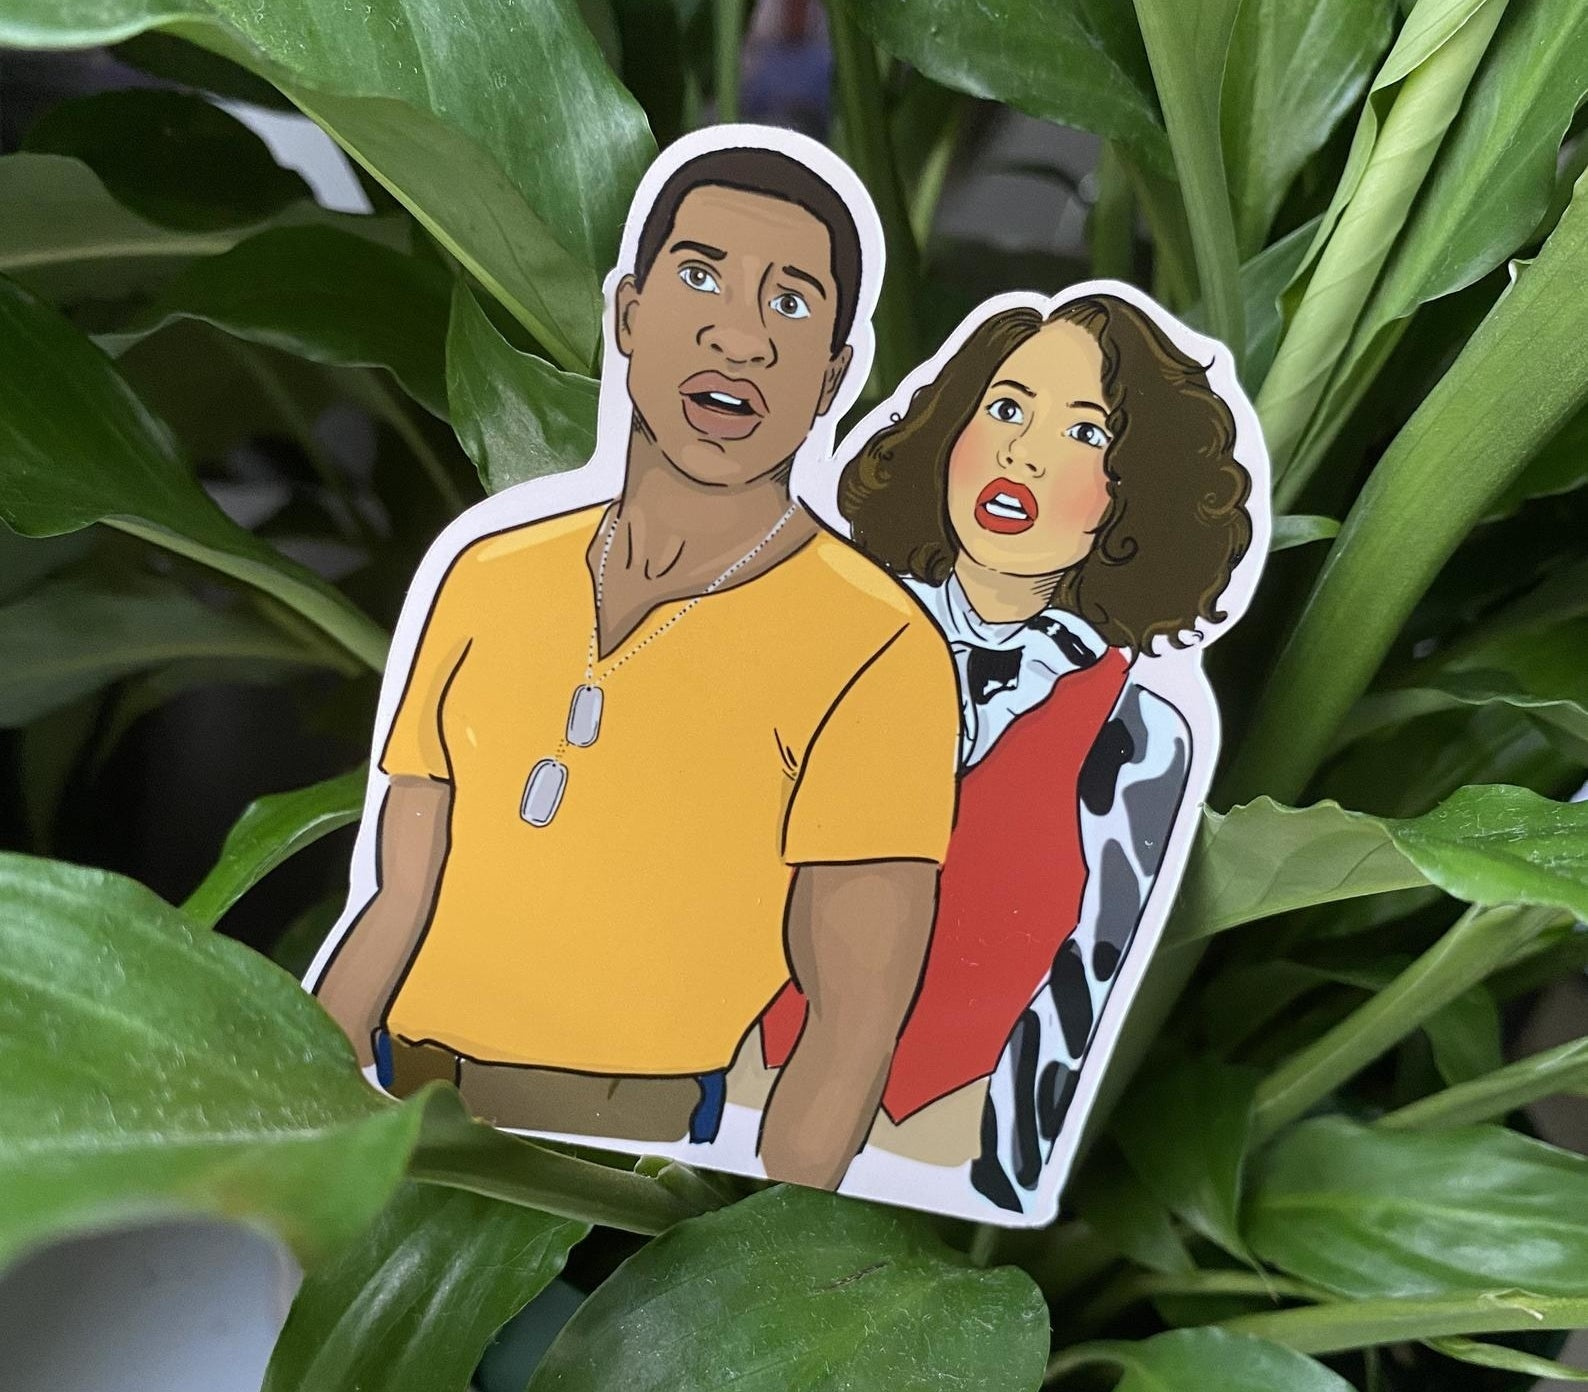 A sticker showing an original illustration of Atticus and Leti from HBO's Lovecraft Country